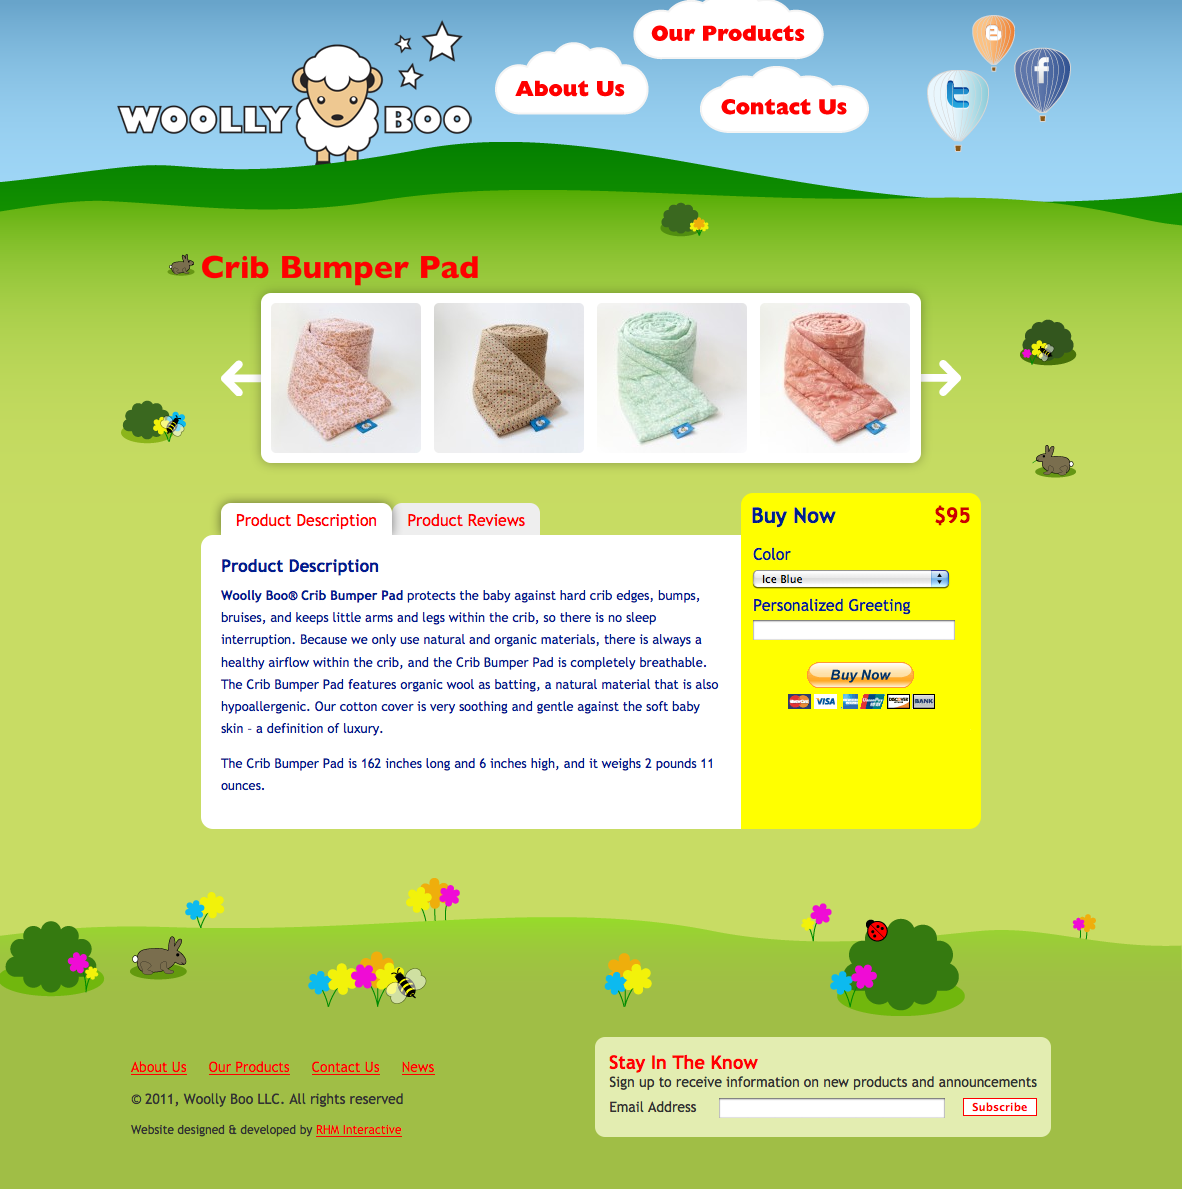 Woolly Boo Product Page